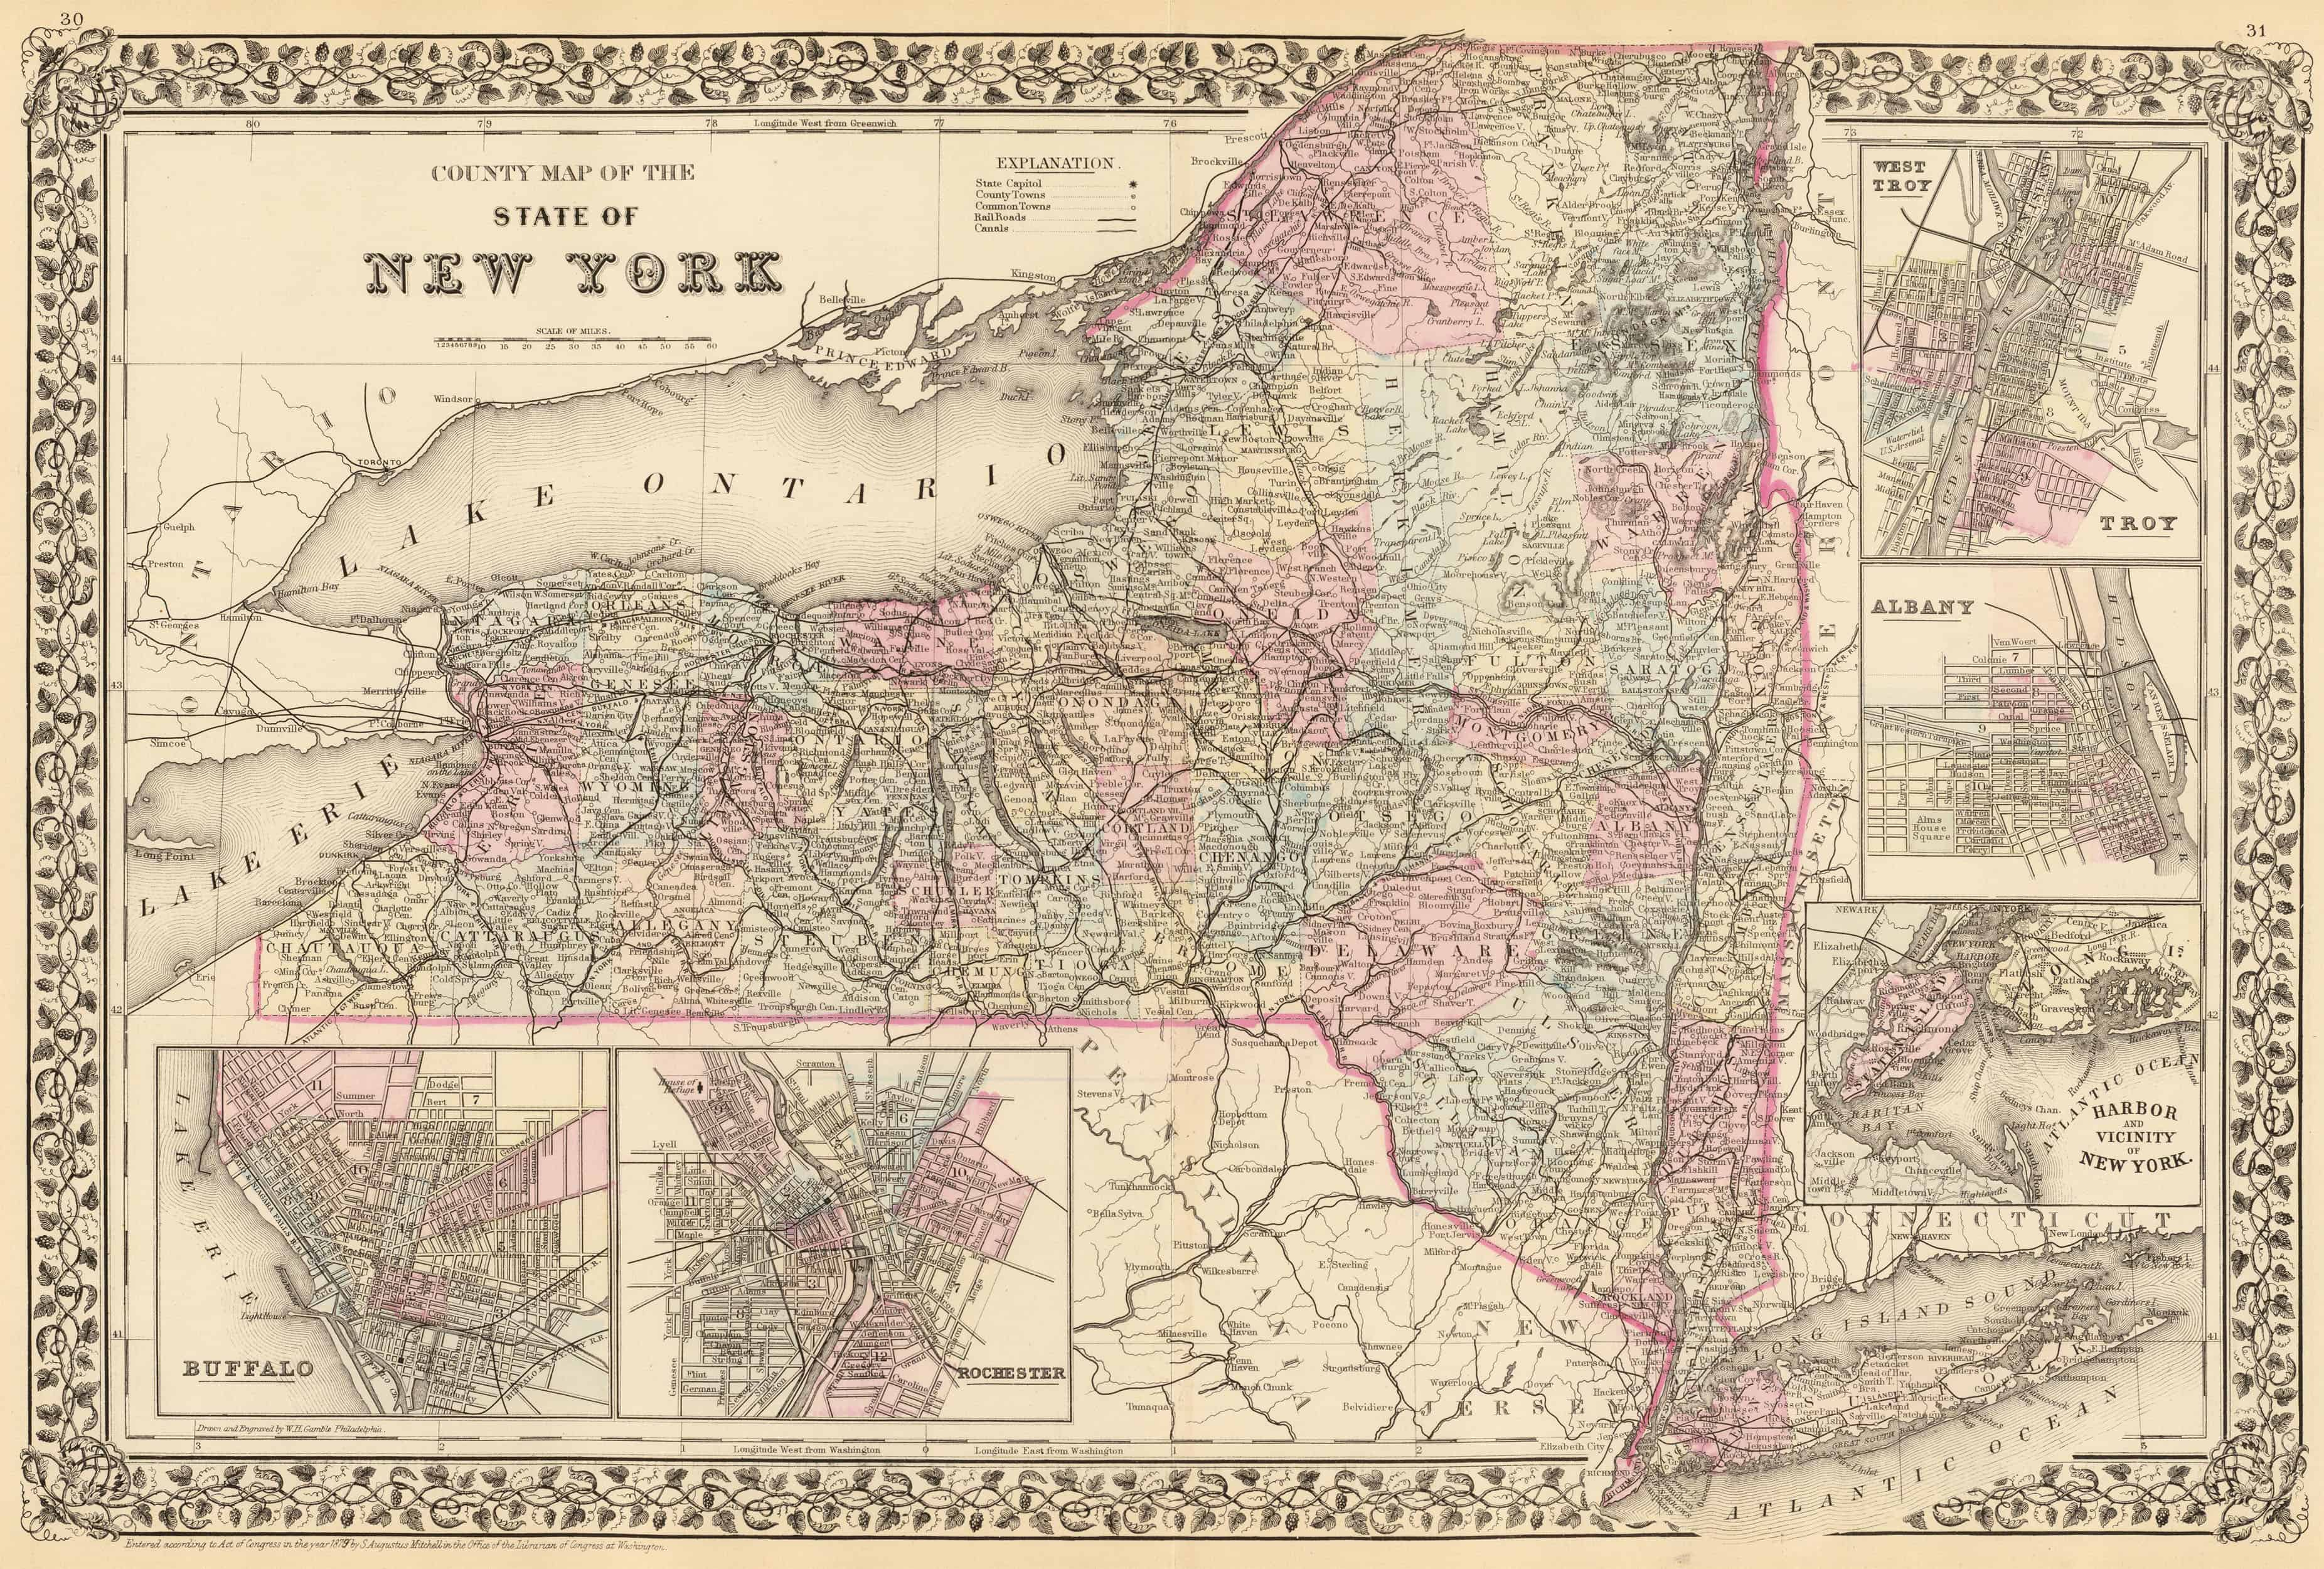 Old Historical City, County and State Maps of New York on detailed map of pinellas trail, detailed map of manhattan ny, new york woodstock map ny state, detailed map of west ireland, detailed map of new york, detailed map of modern israel, detailed map of martha's vineyard, detailed map of mt, detailed map of los angeles county, detailed map of nyc, detailed map of southern states, detailed map of bronx, google map of new york state, detailed map of grand canyon, detailed maps of brooklyn, map of vermont and new york state, detailed map of the us, detailed map of queens, detailed map of upstate ny, detailed map of buffalo ny,